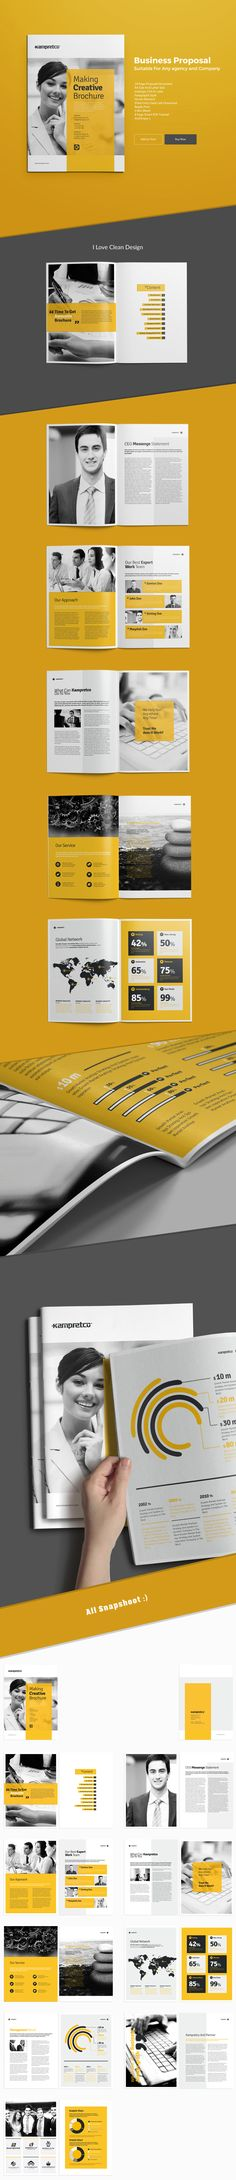 https://www.behance.net/gallery/29857989/Business-Brochure